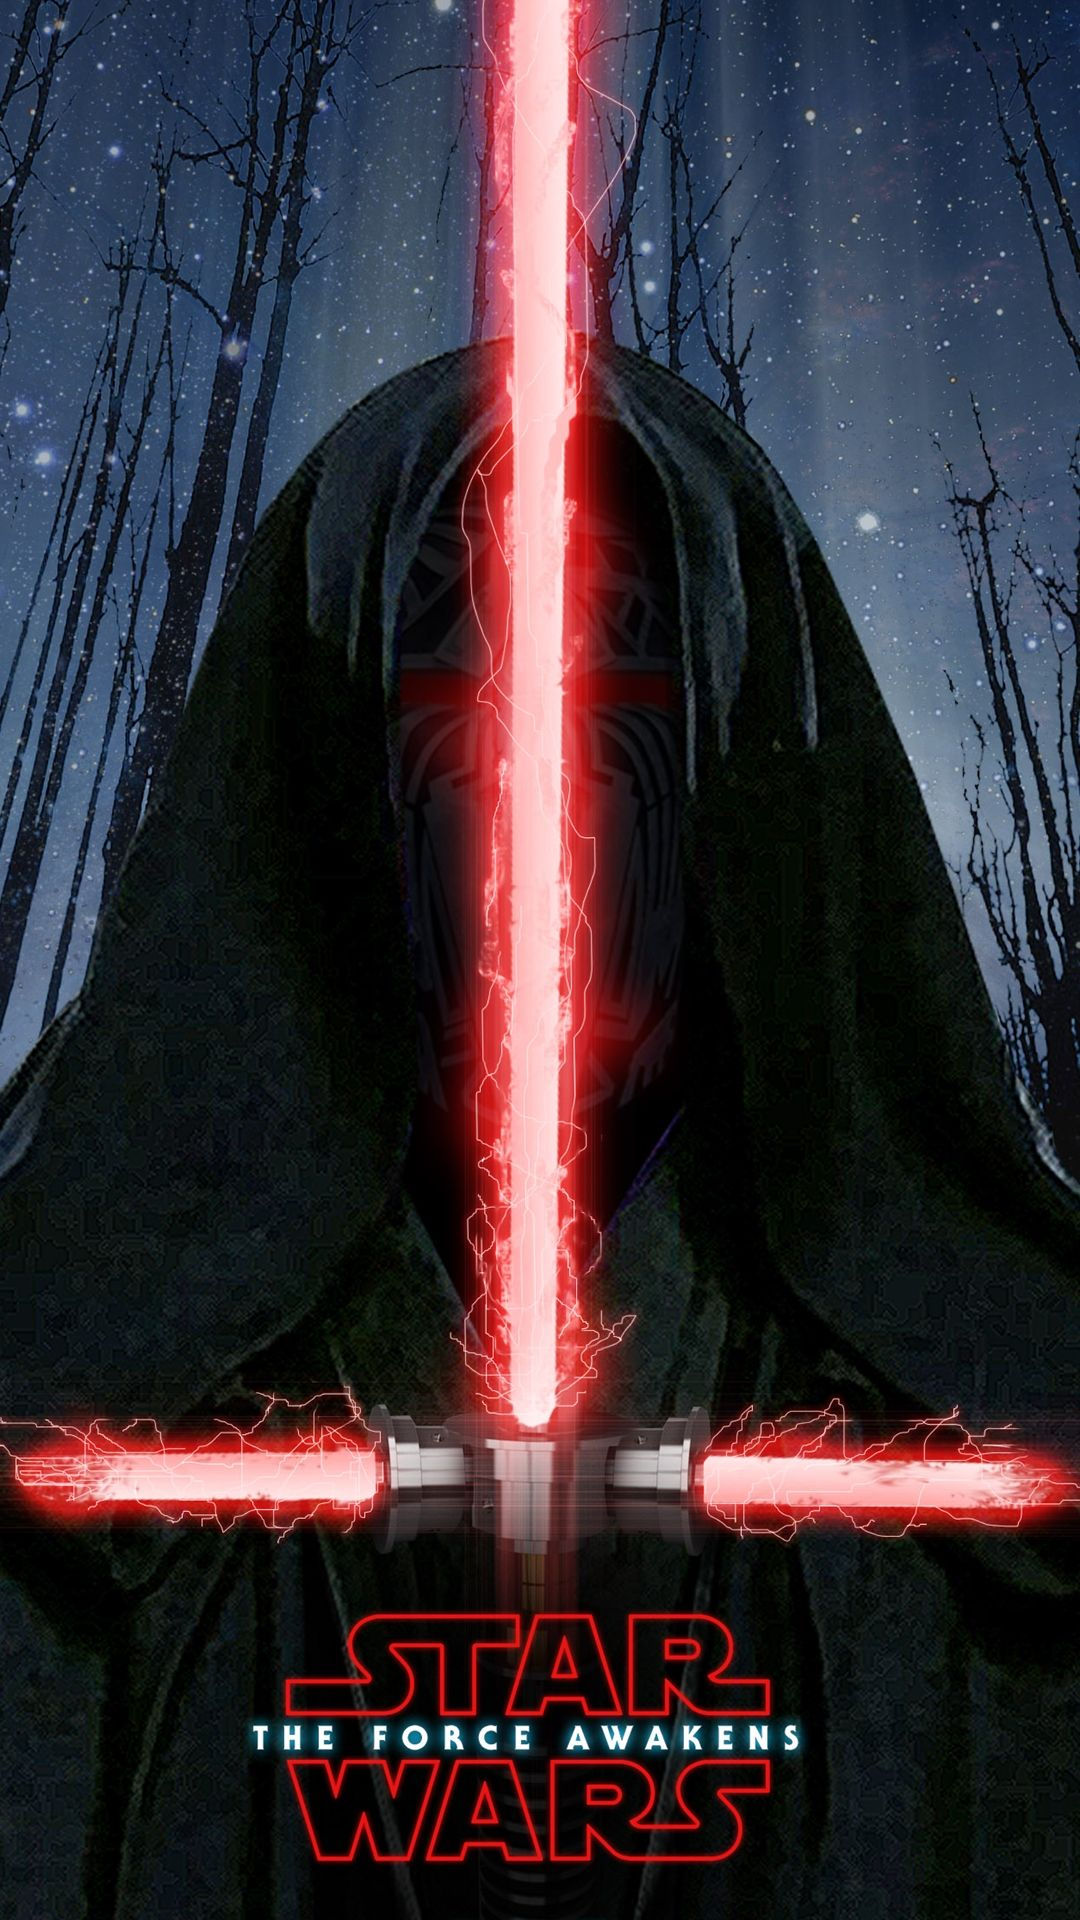 darth vader wallpaper iphone 6 hd